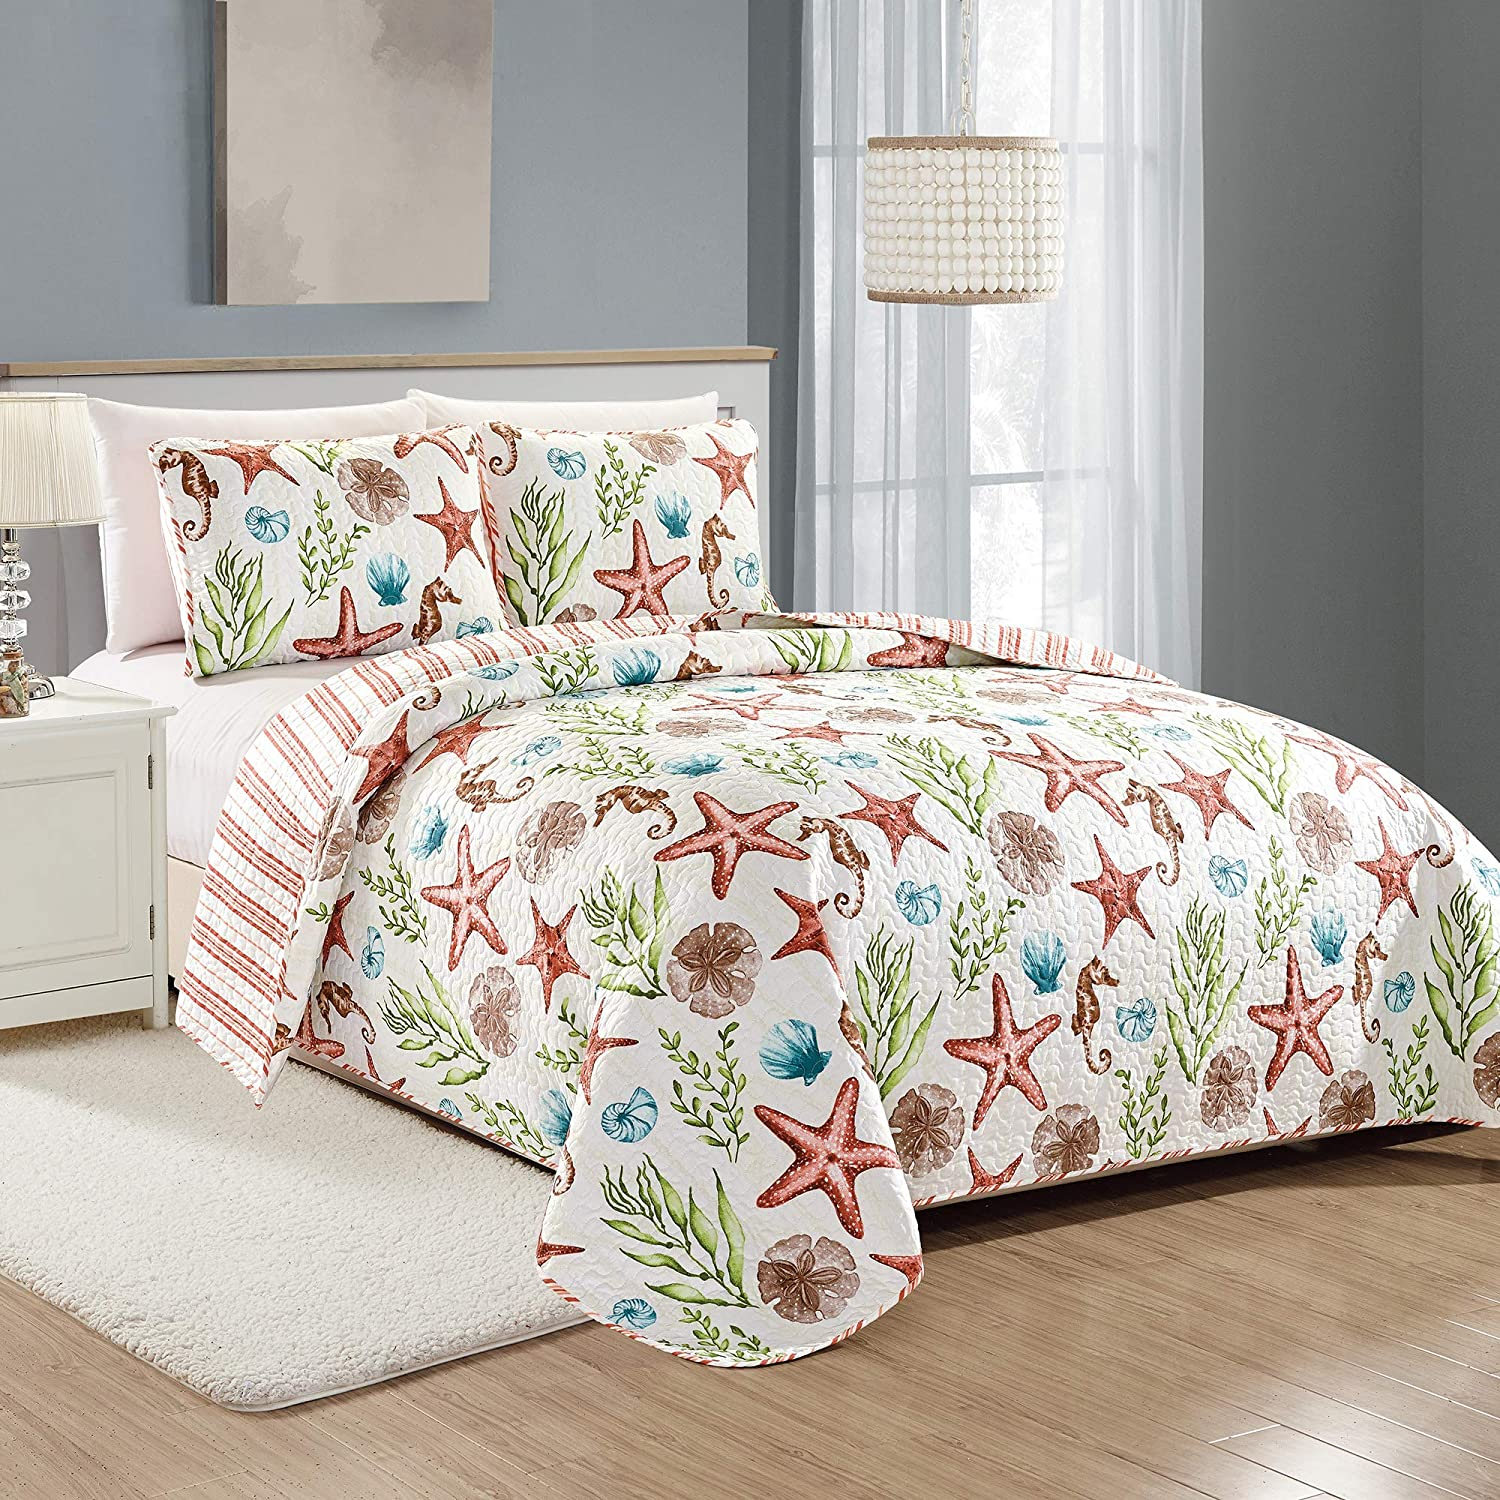 Great Bay Home Castaway Coastal Collection 3 Piece Quilt Set with Shams. Reversible Beach Theme Bedspread Coverlet. Machine Washable. (Full/Queen, Multi)